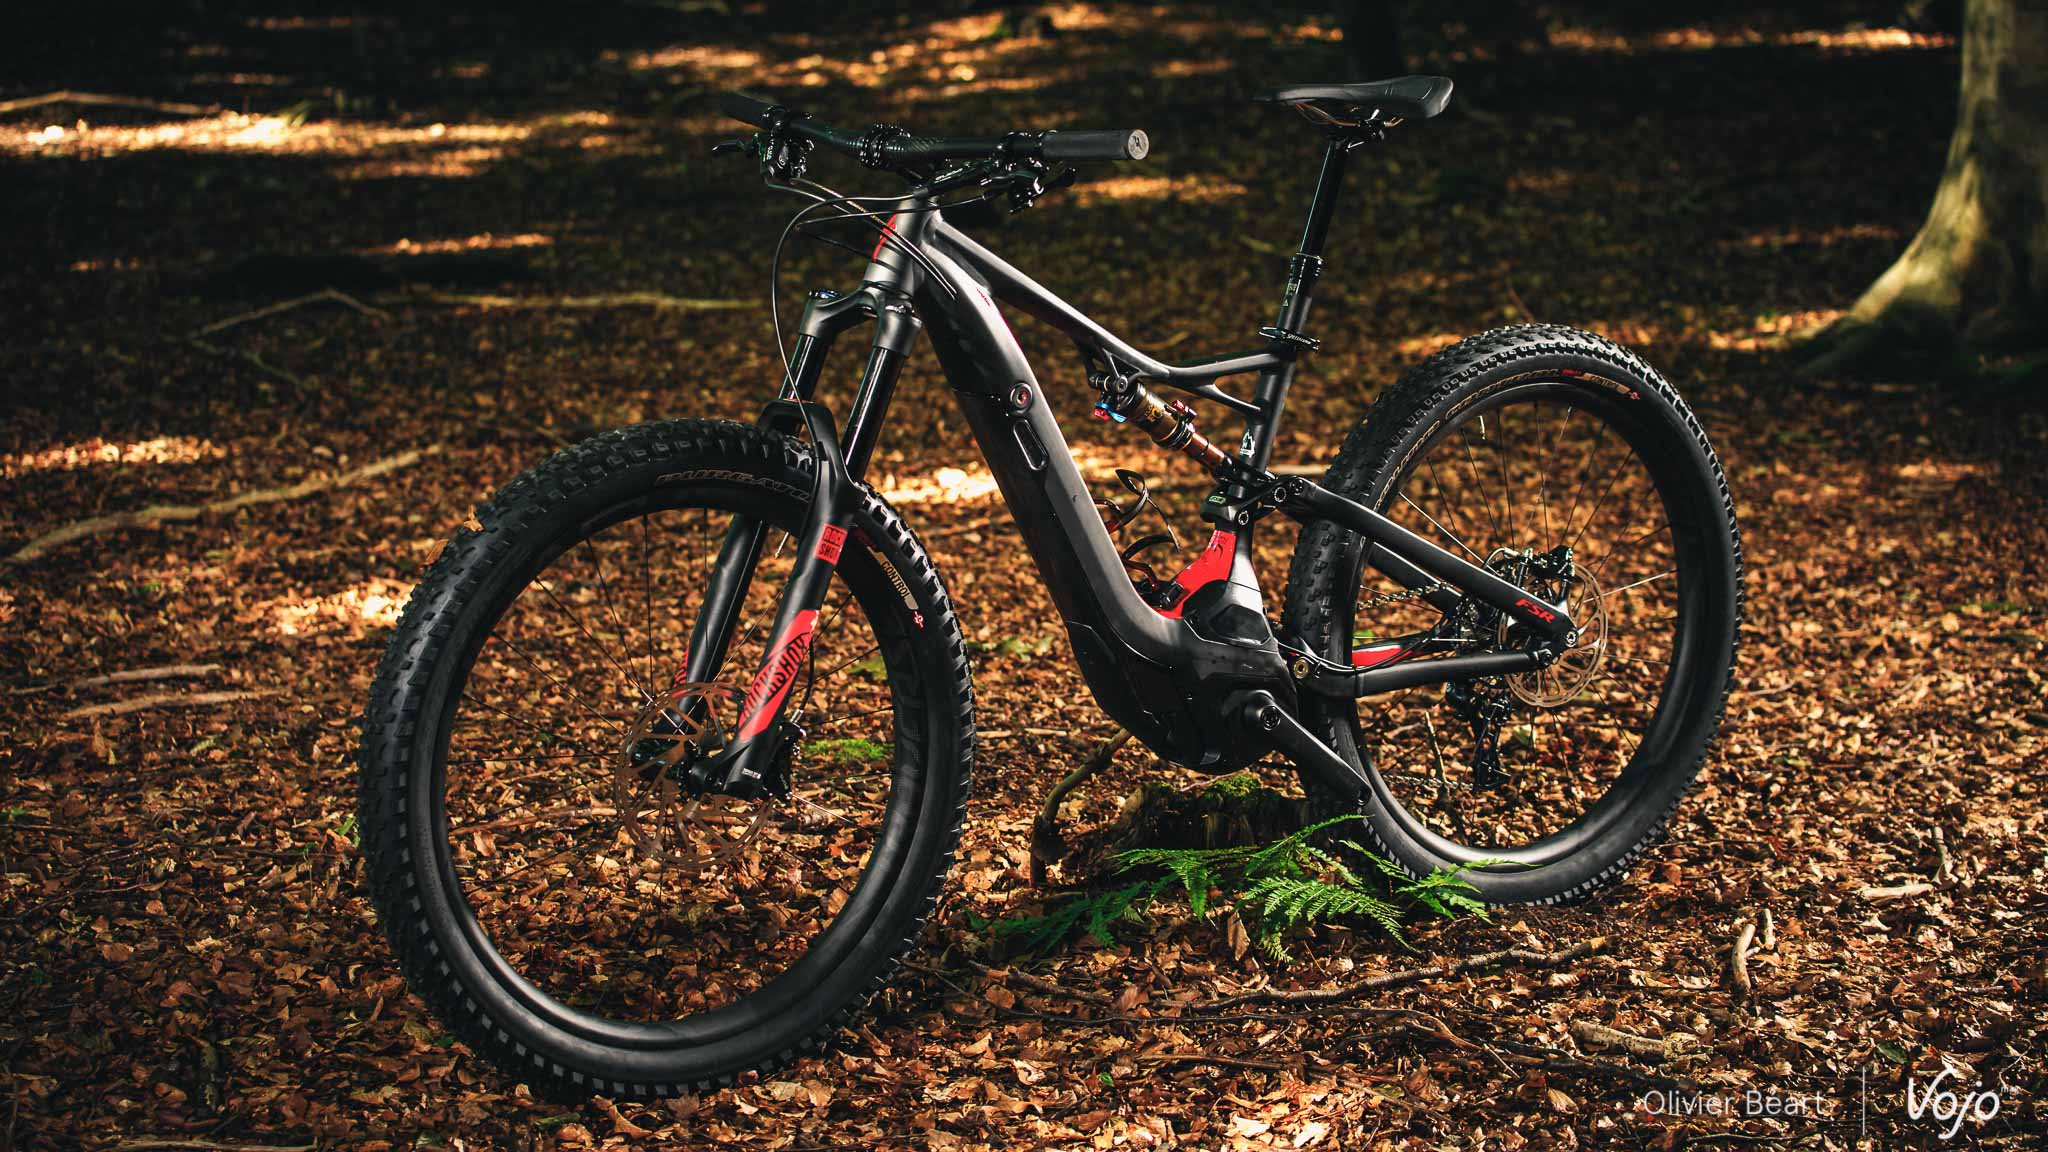 Specialized_Turbo_Levo_FSR_Copyright_Beart_VojoMag-1-4